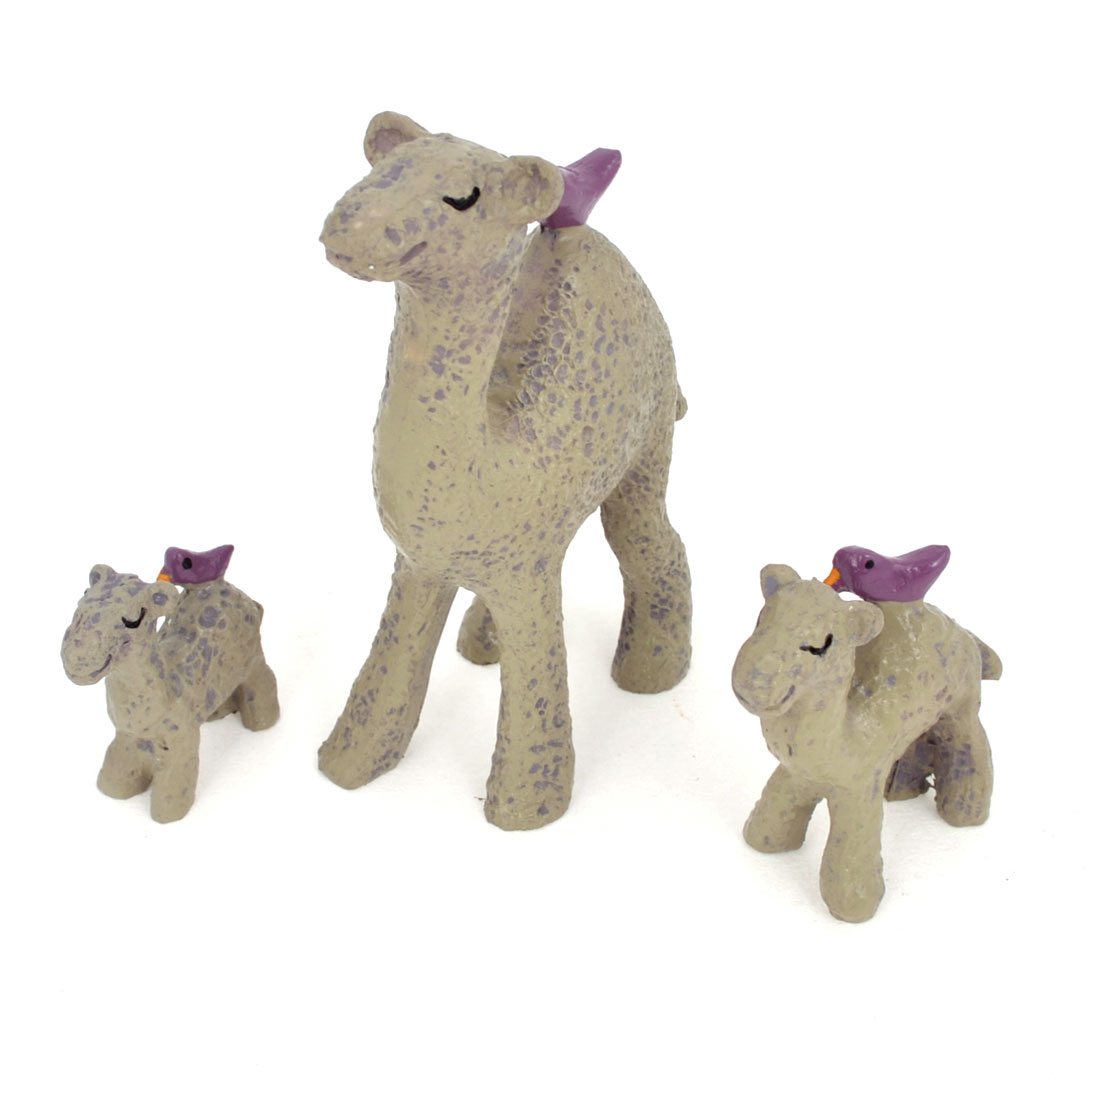 3 in 1 Purple Gray Resin Handicraft Emulational Animal Camel for Office